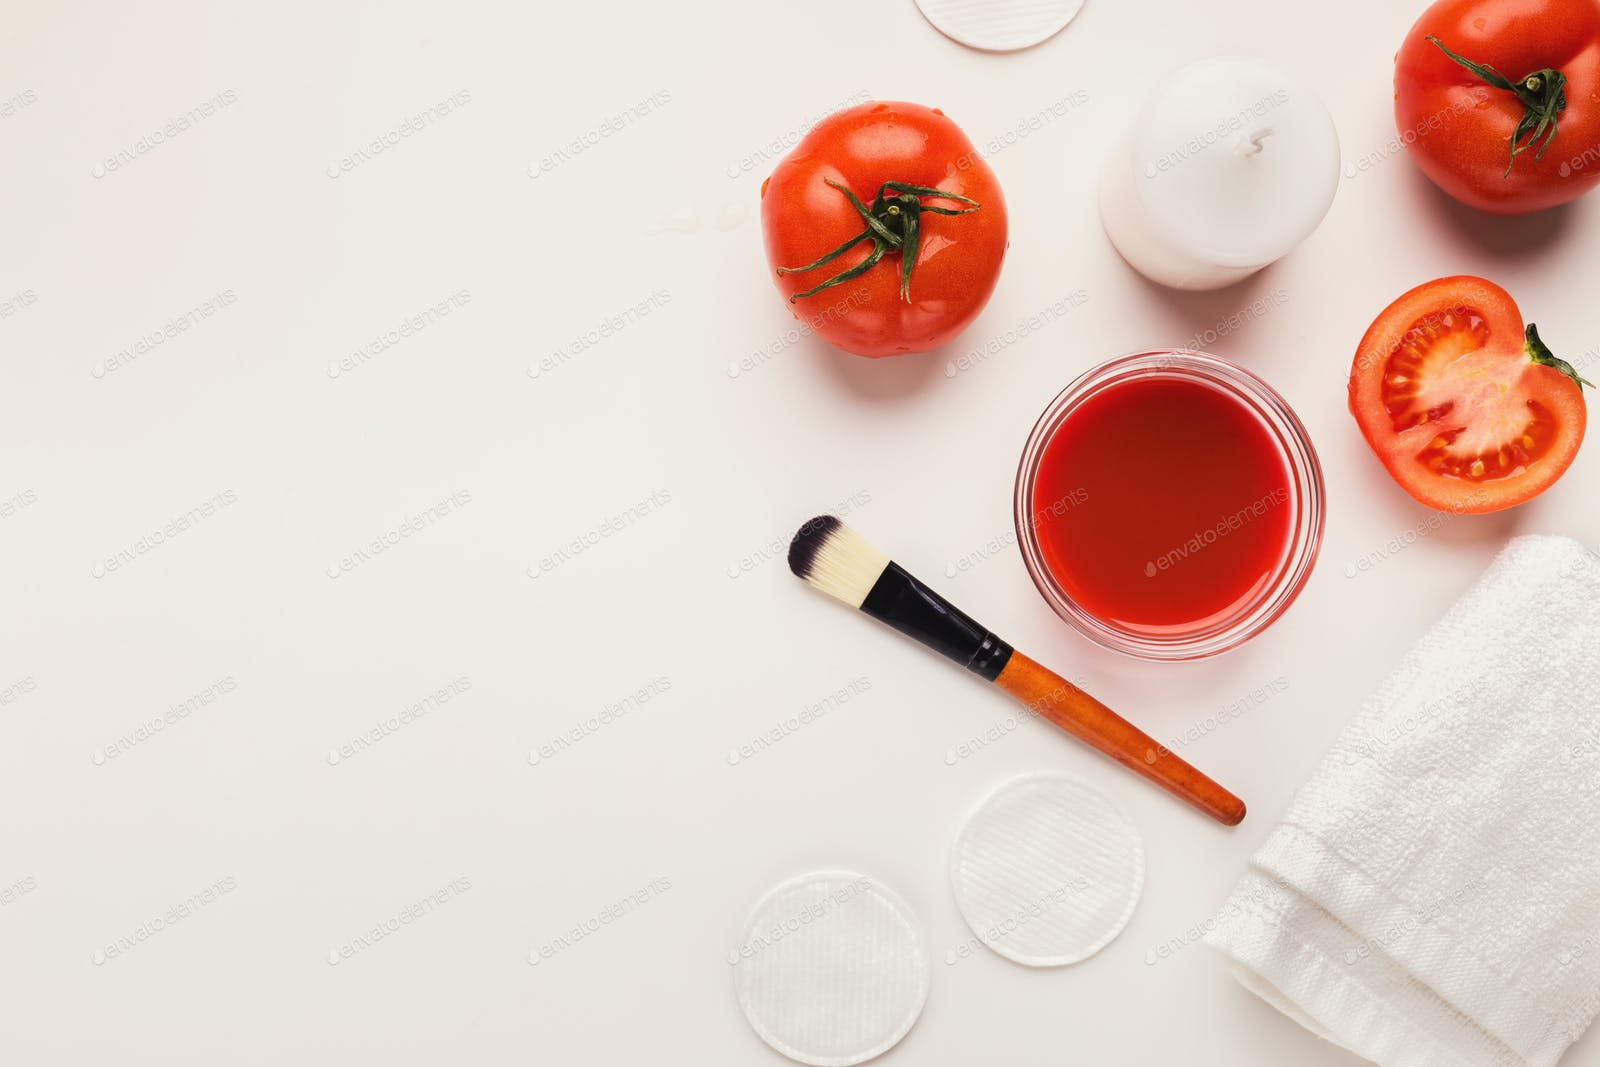 Handmade tomato face mask for home skin care photo by Prostock ...